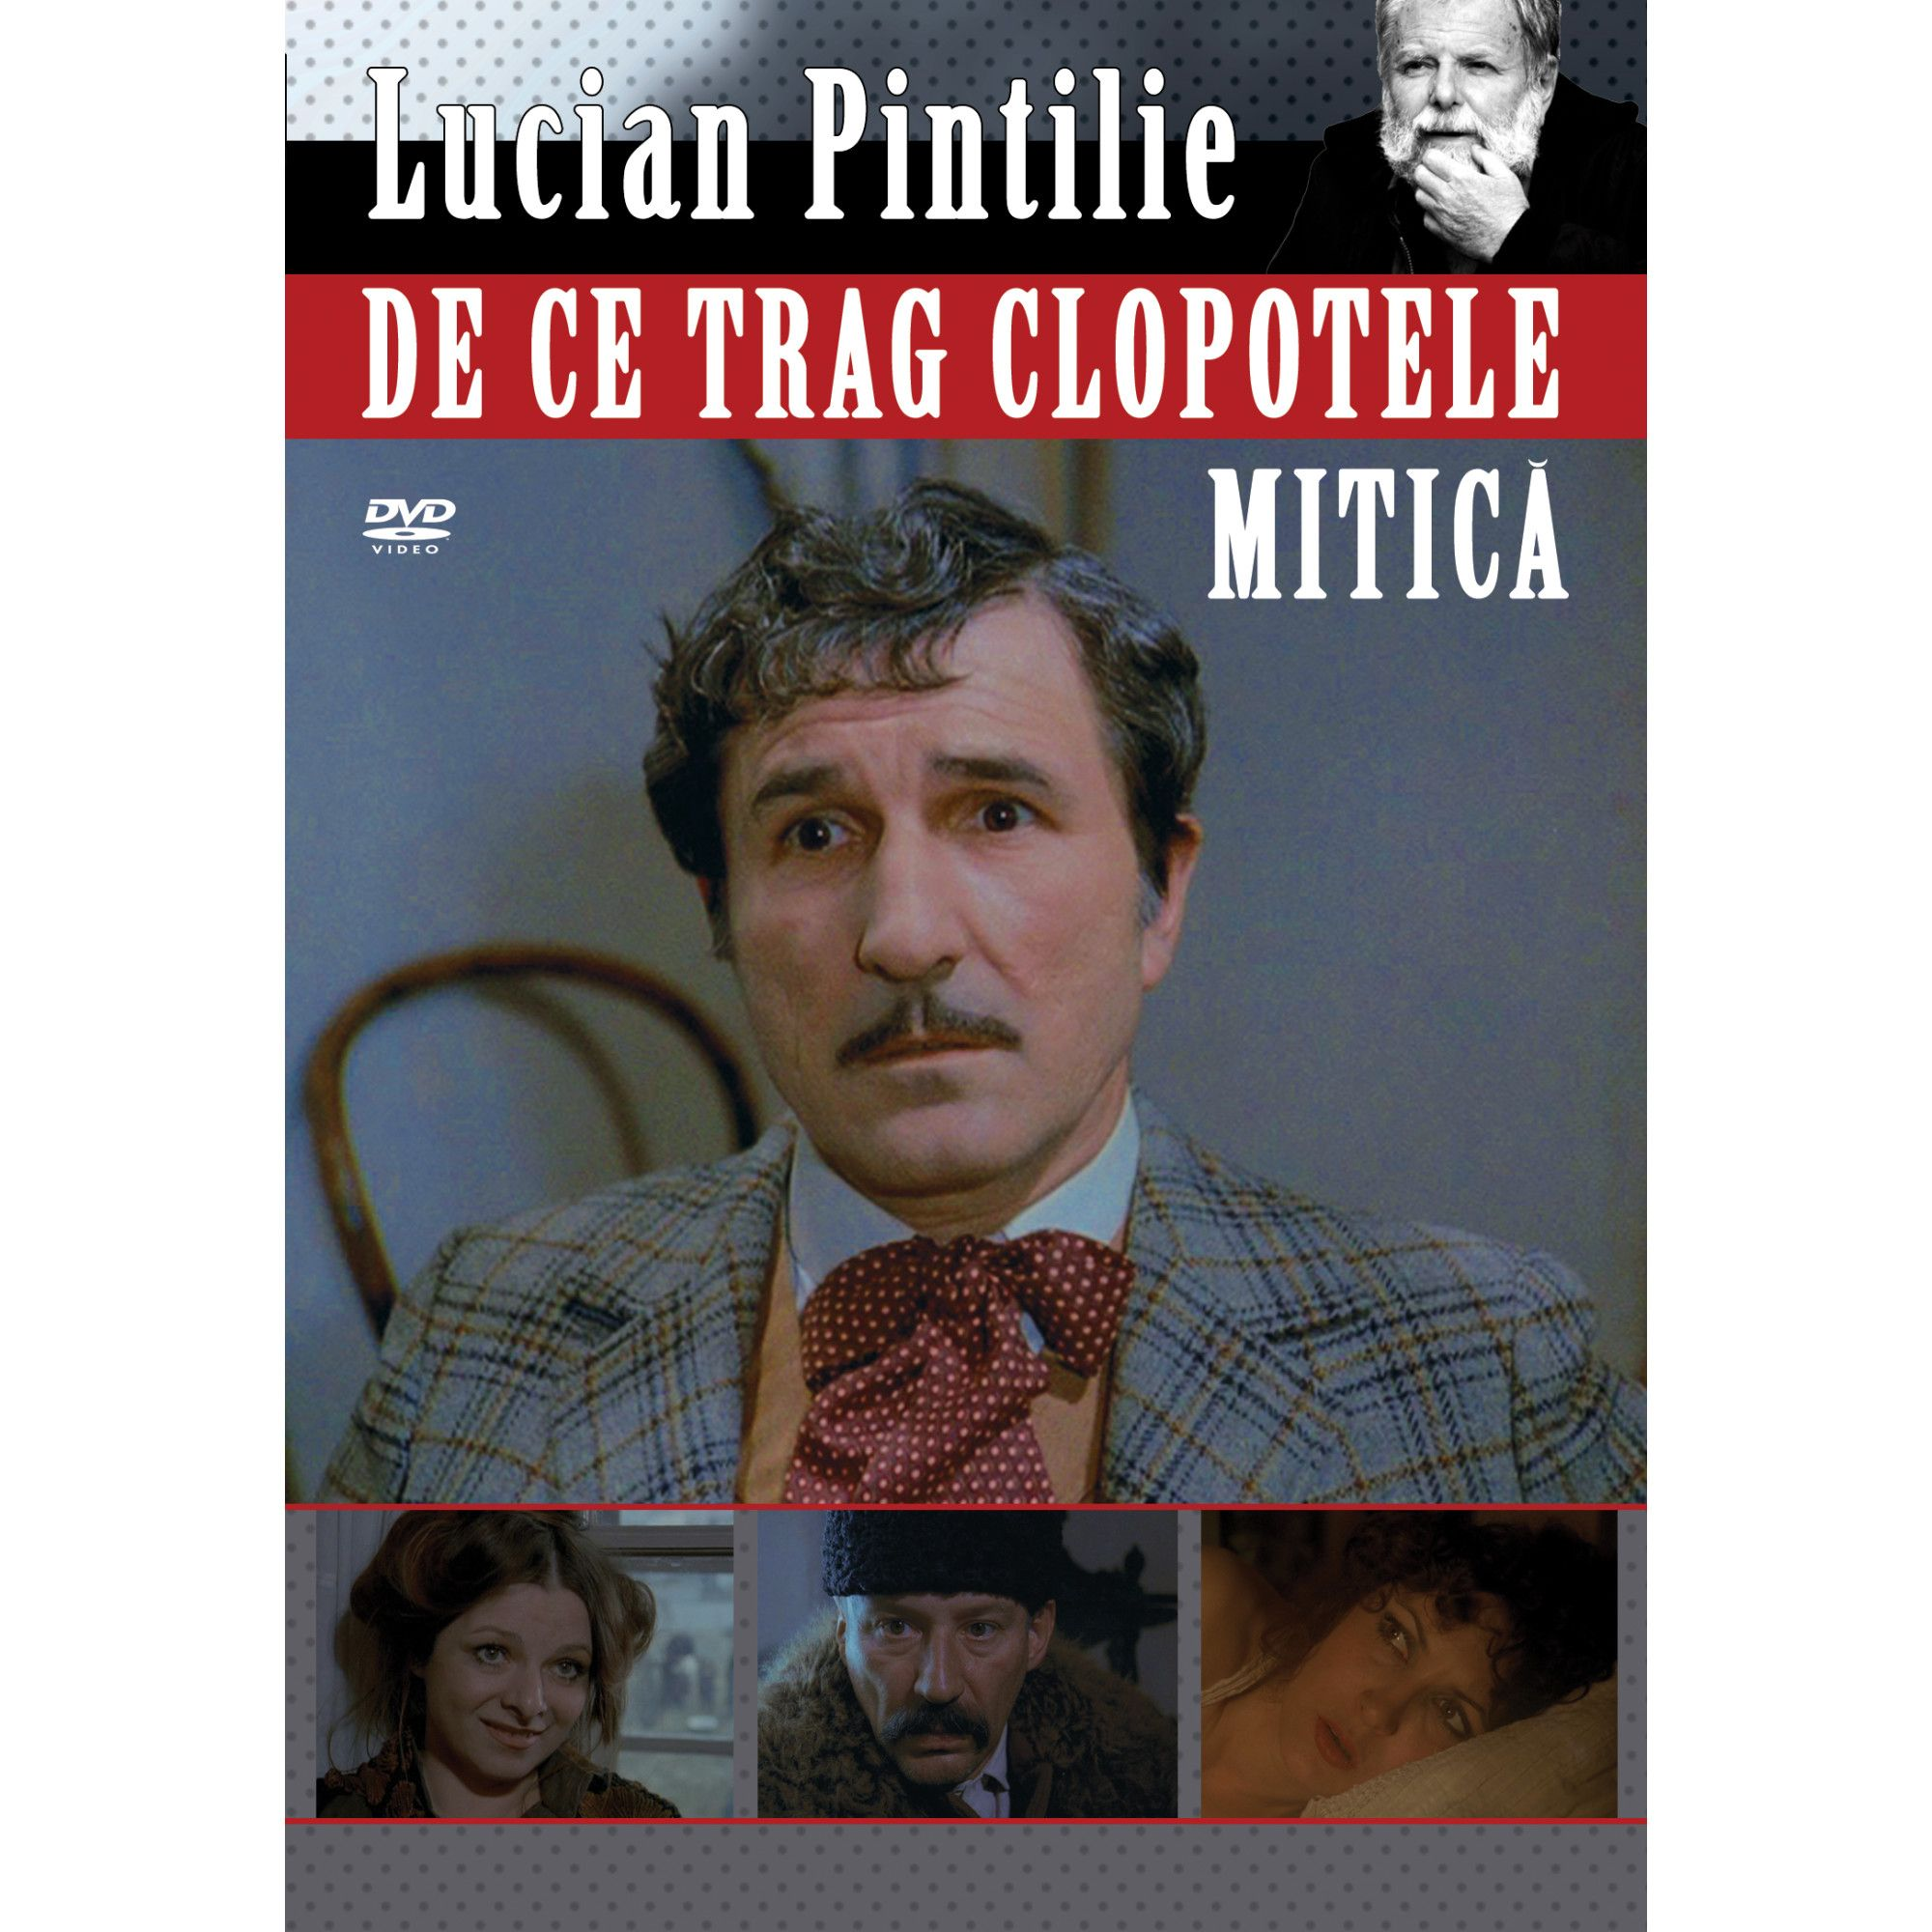 Cover of the DVD of Lucian Pintilie's film De ce trag clopotele, Mitică? (Why are the bells ringing, Mitică?)